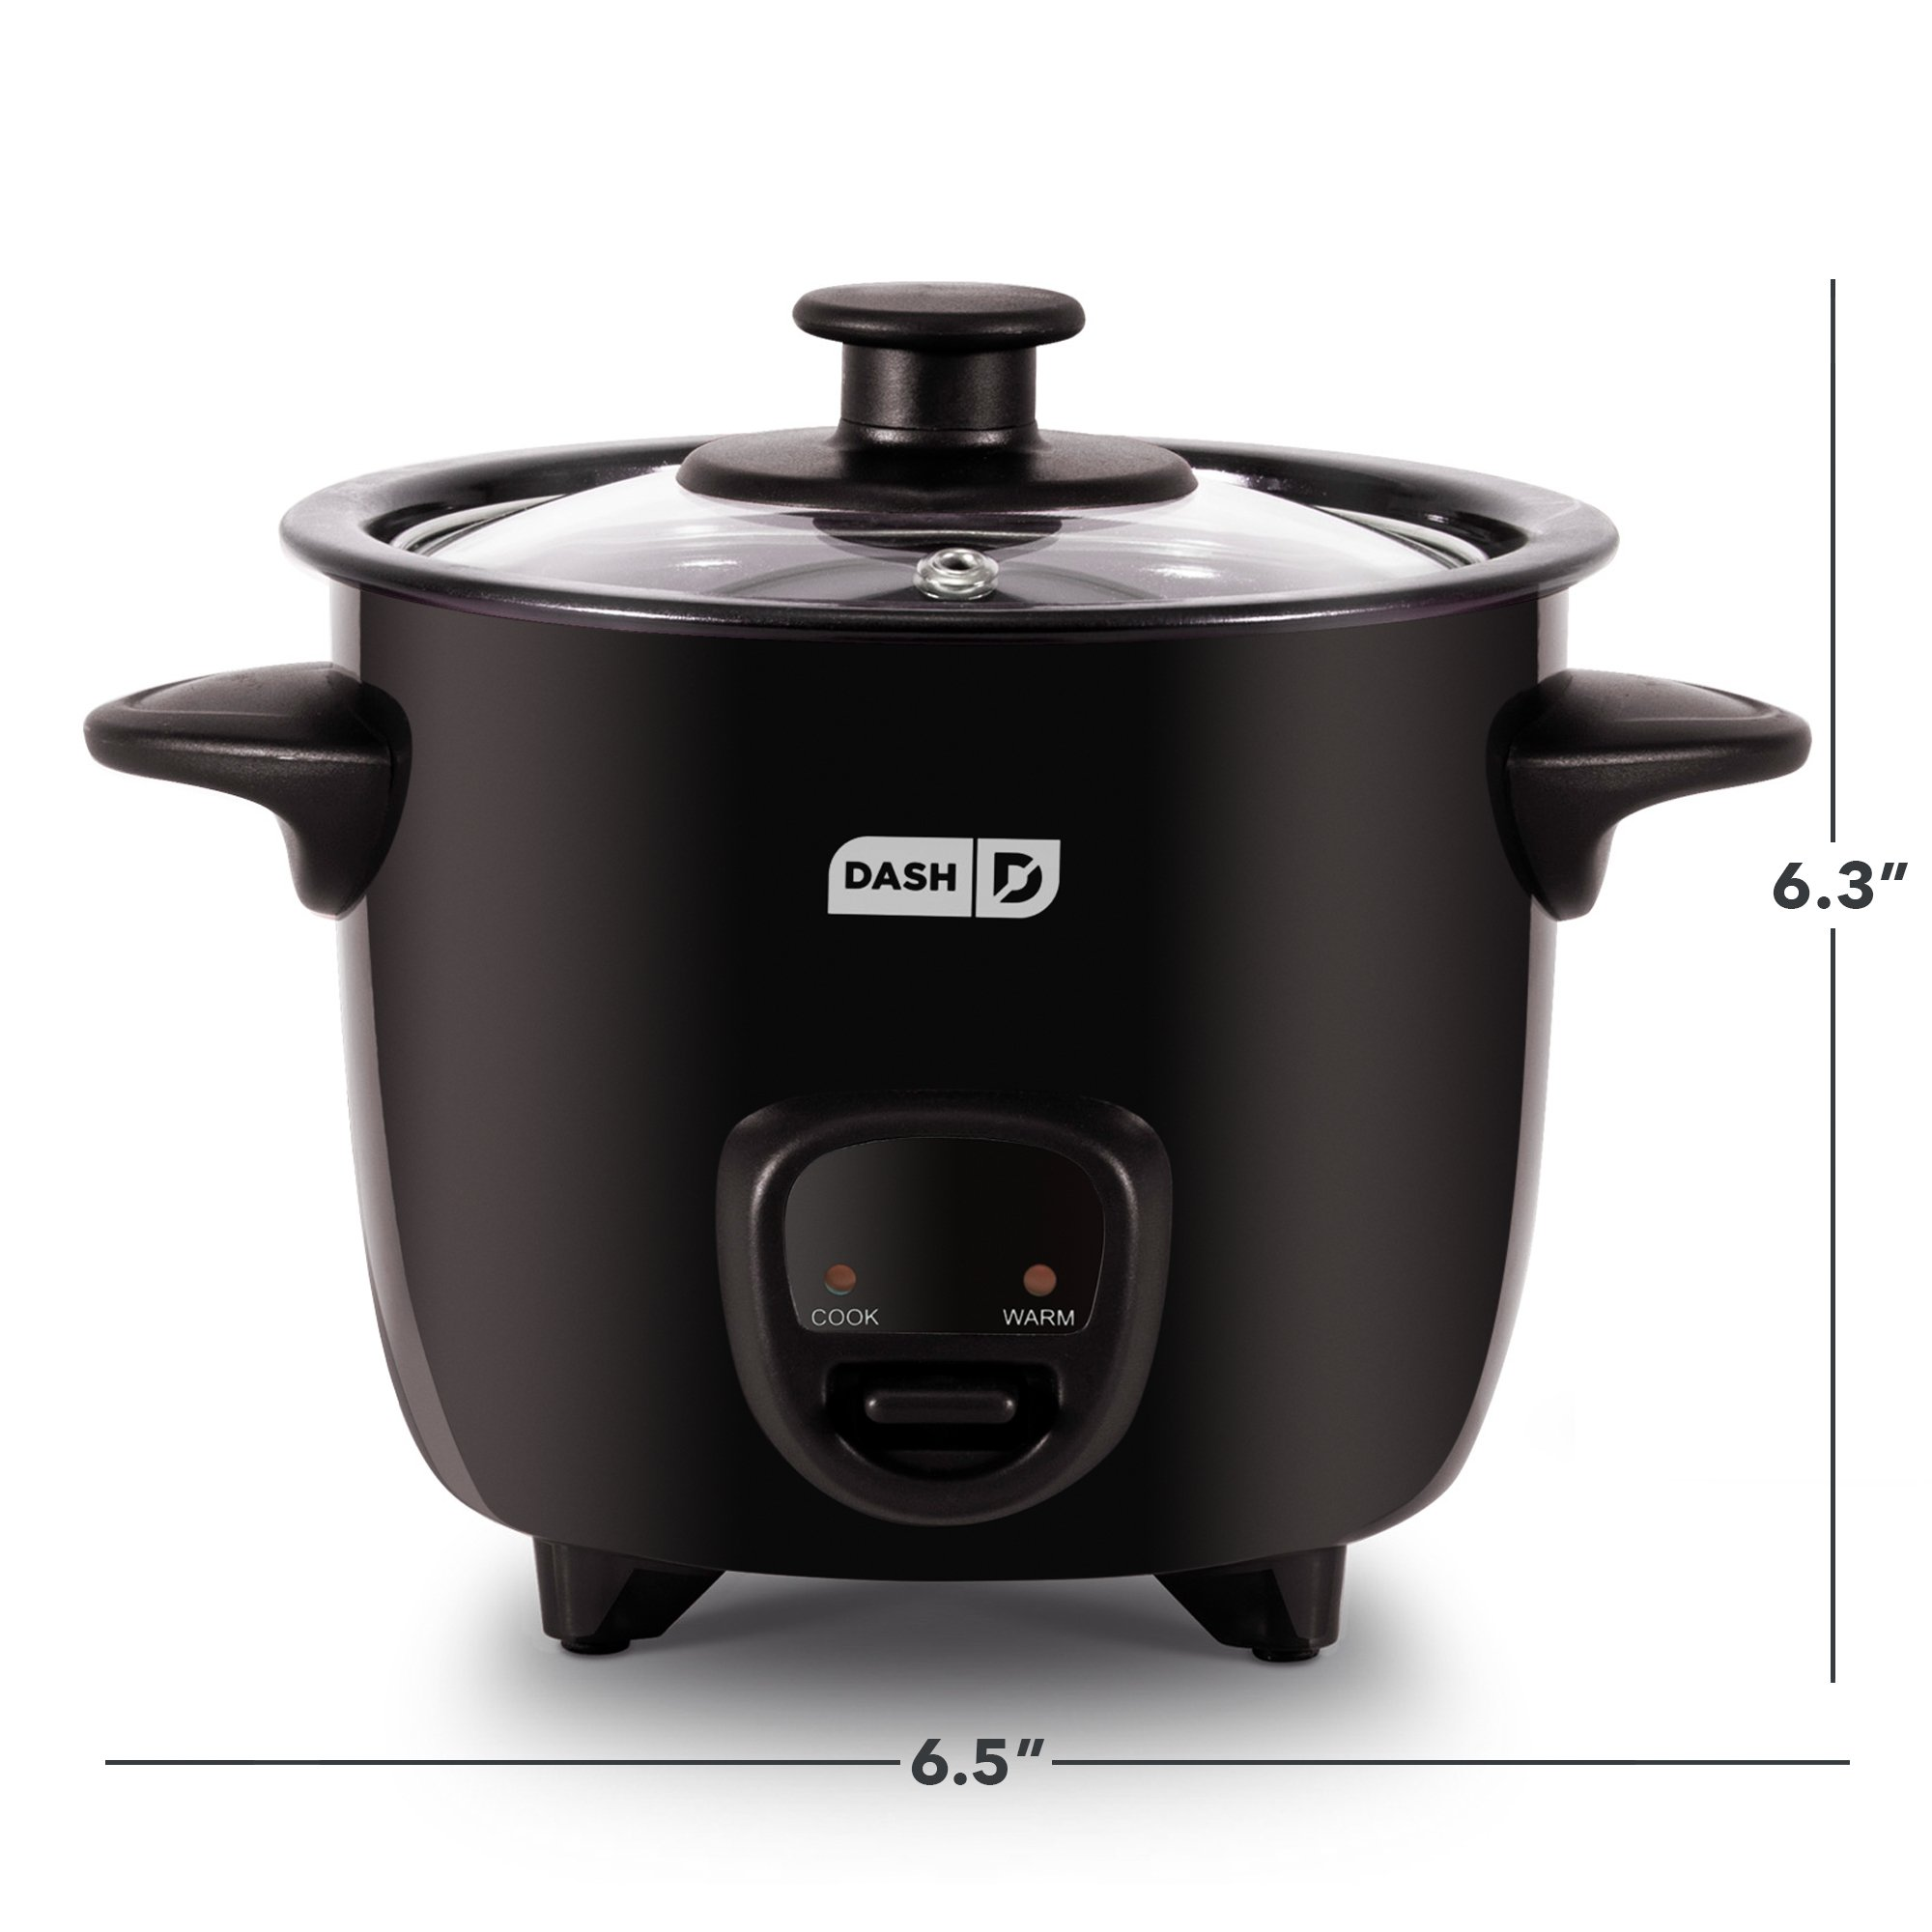 Dash DRCM200BK Mini Rice Cooker Steamer with Removable Nonstick Pot, Keep Warm Function and Recipe Guide -, 2 Cups, Great for Soups, Stews, Grains and Oatmeal -, Black by Dash (Image #5)